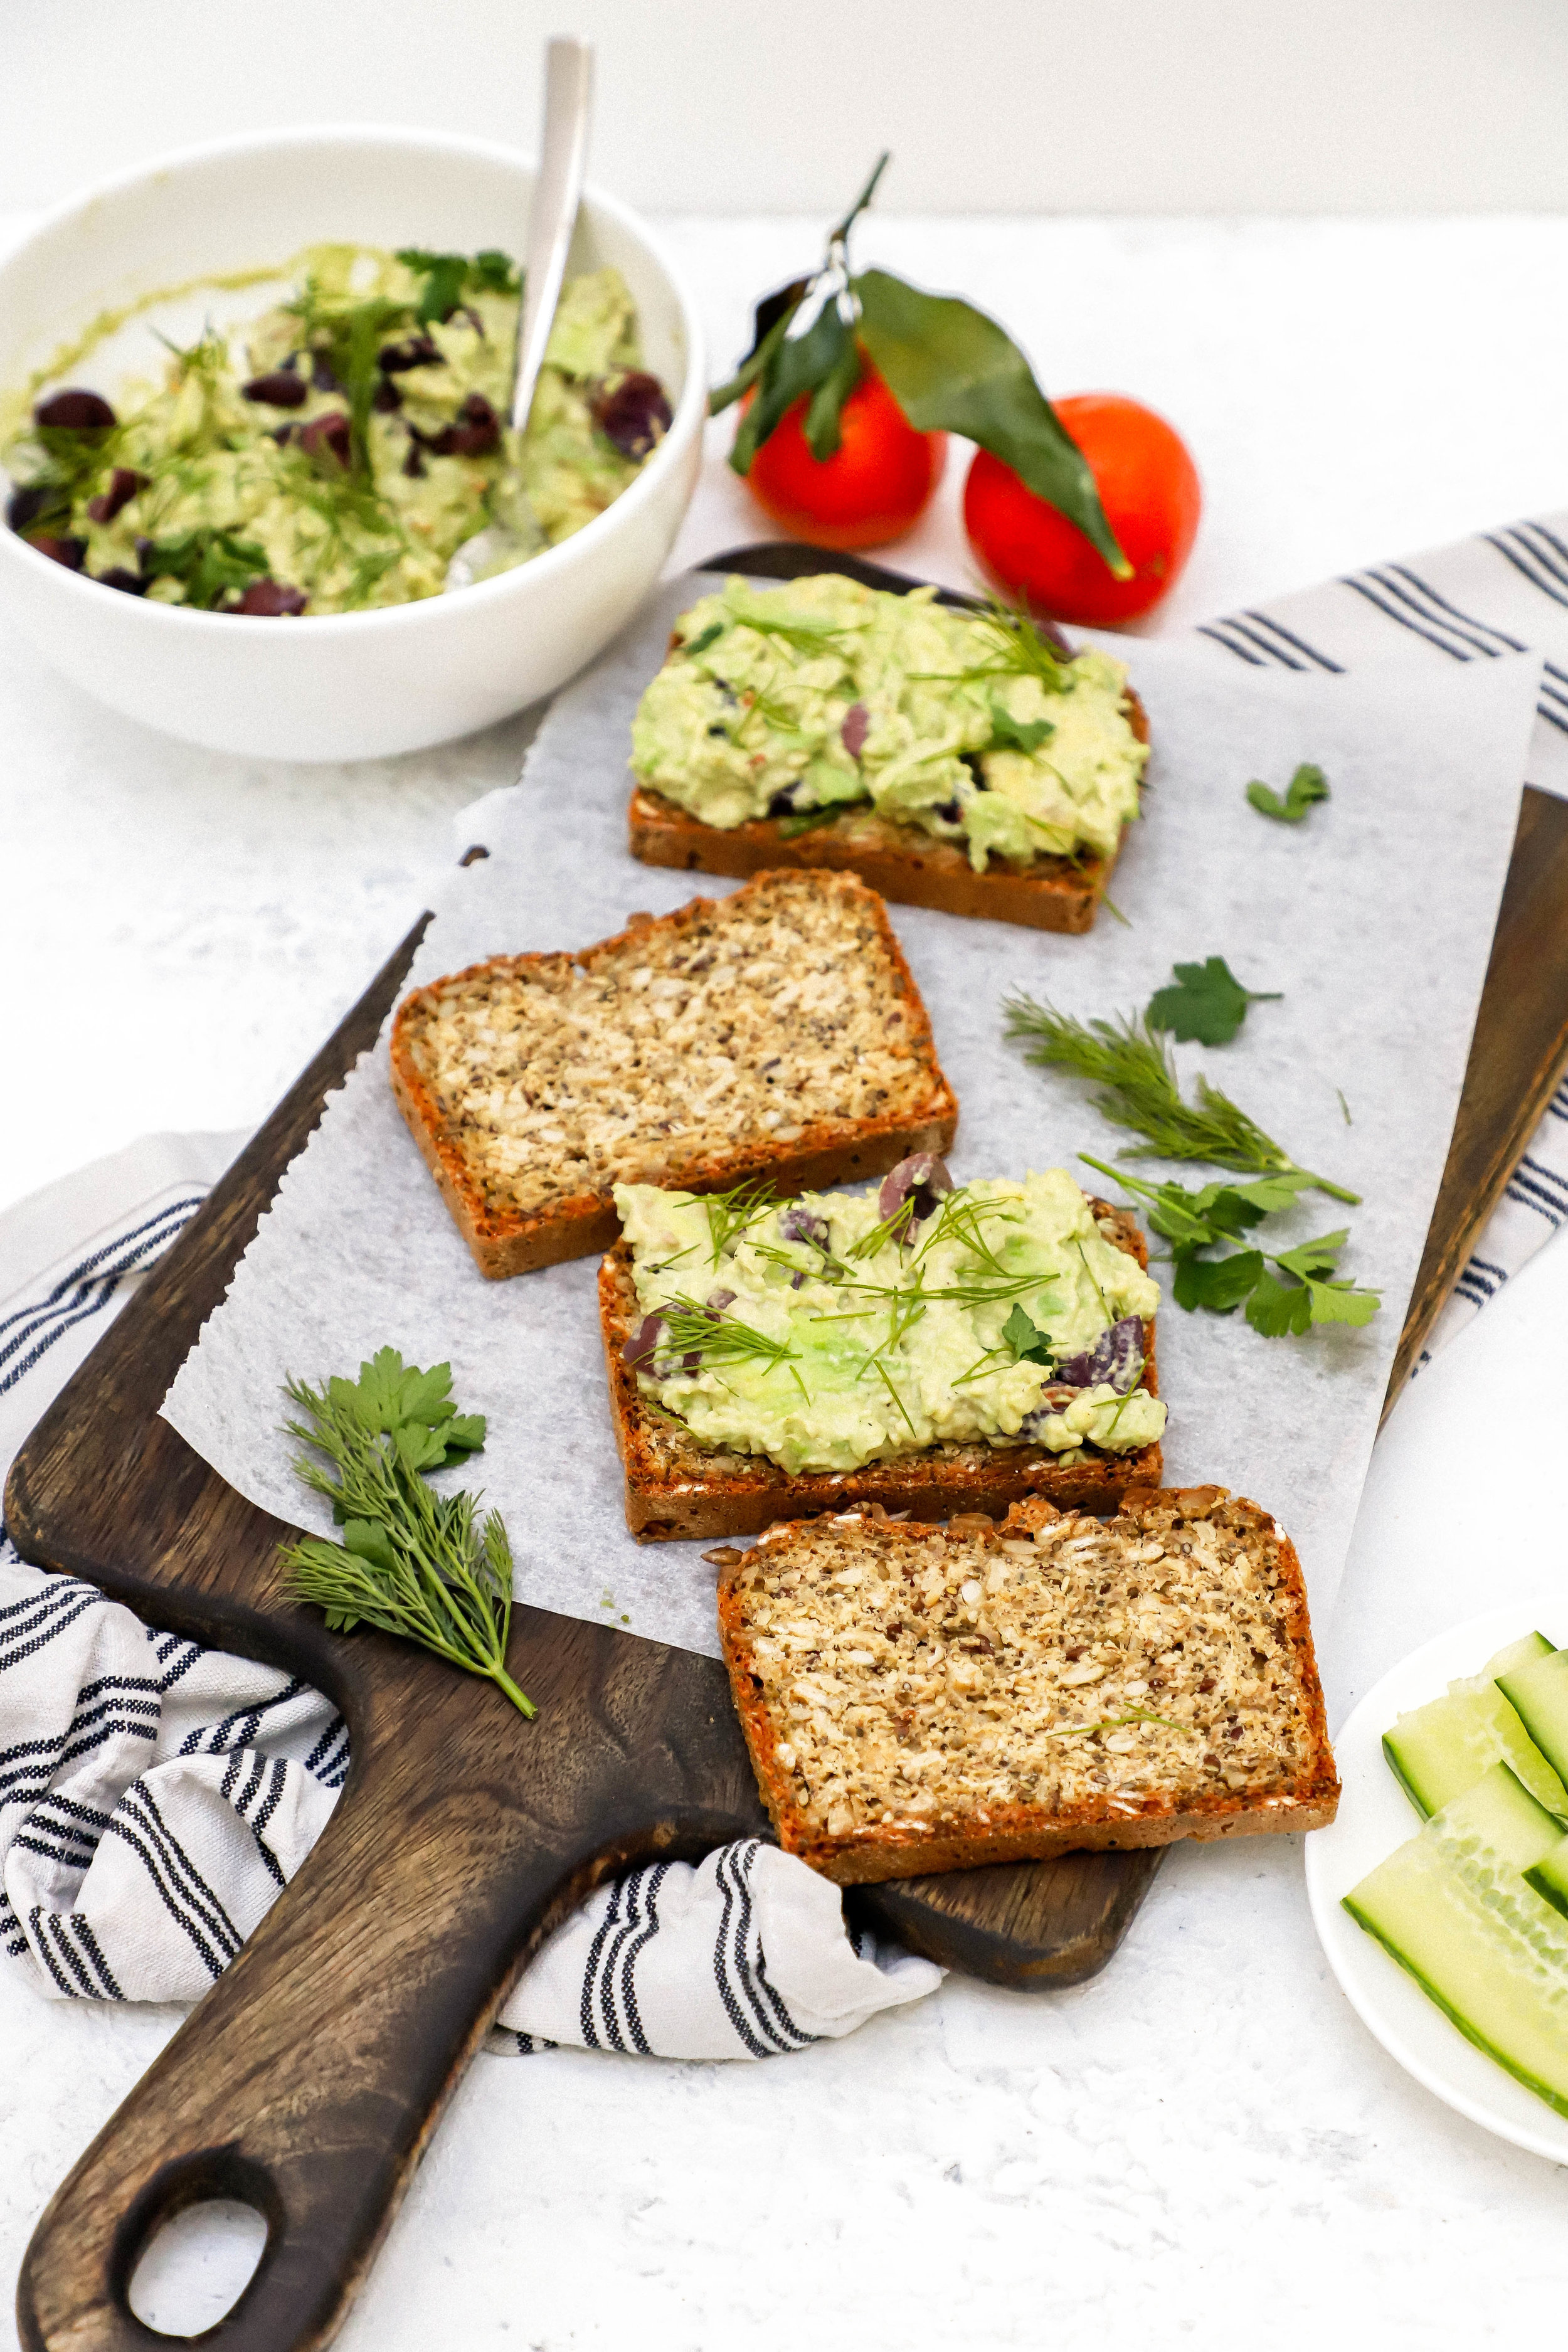 Vegan and gluten-free avocado smash on bread to make sandwiches